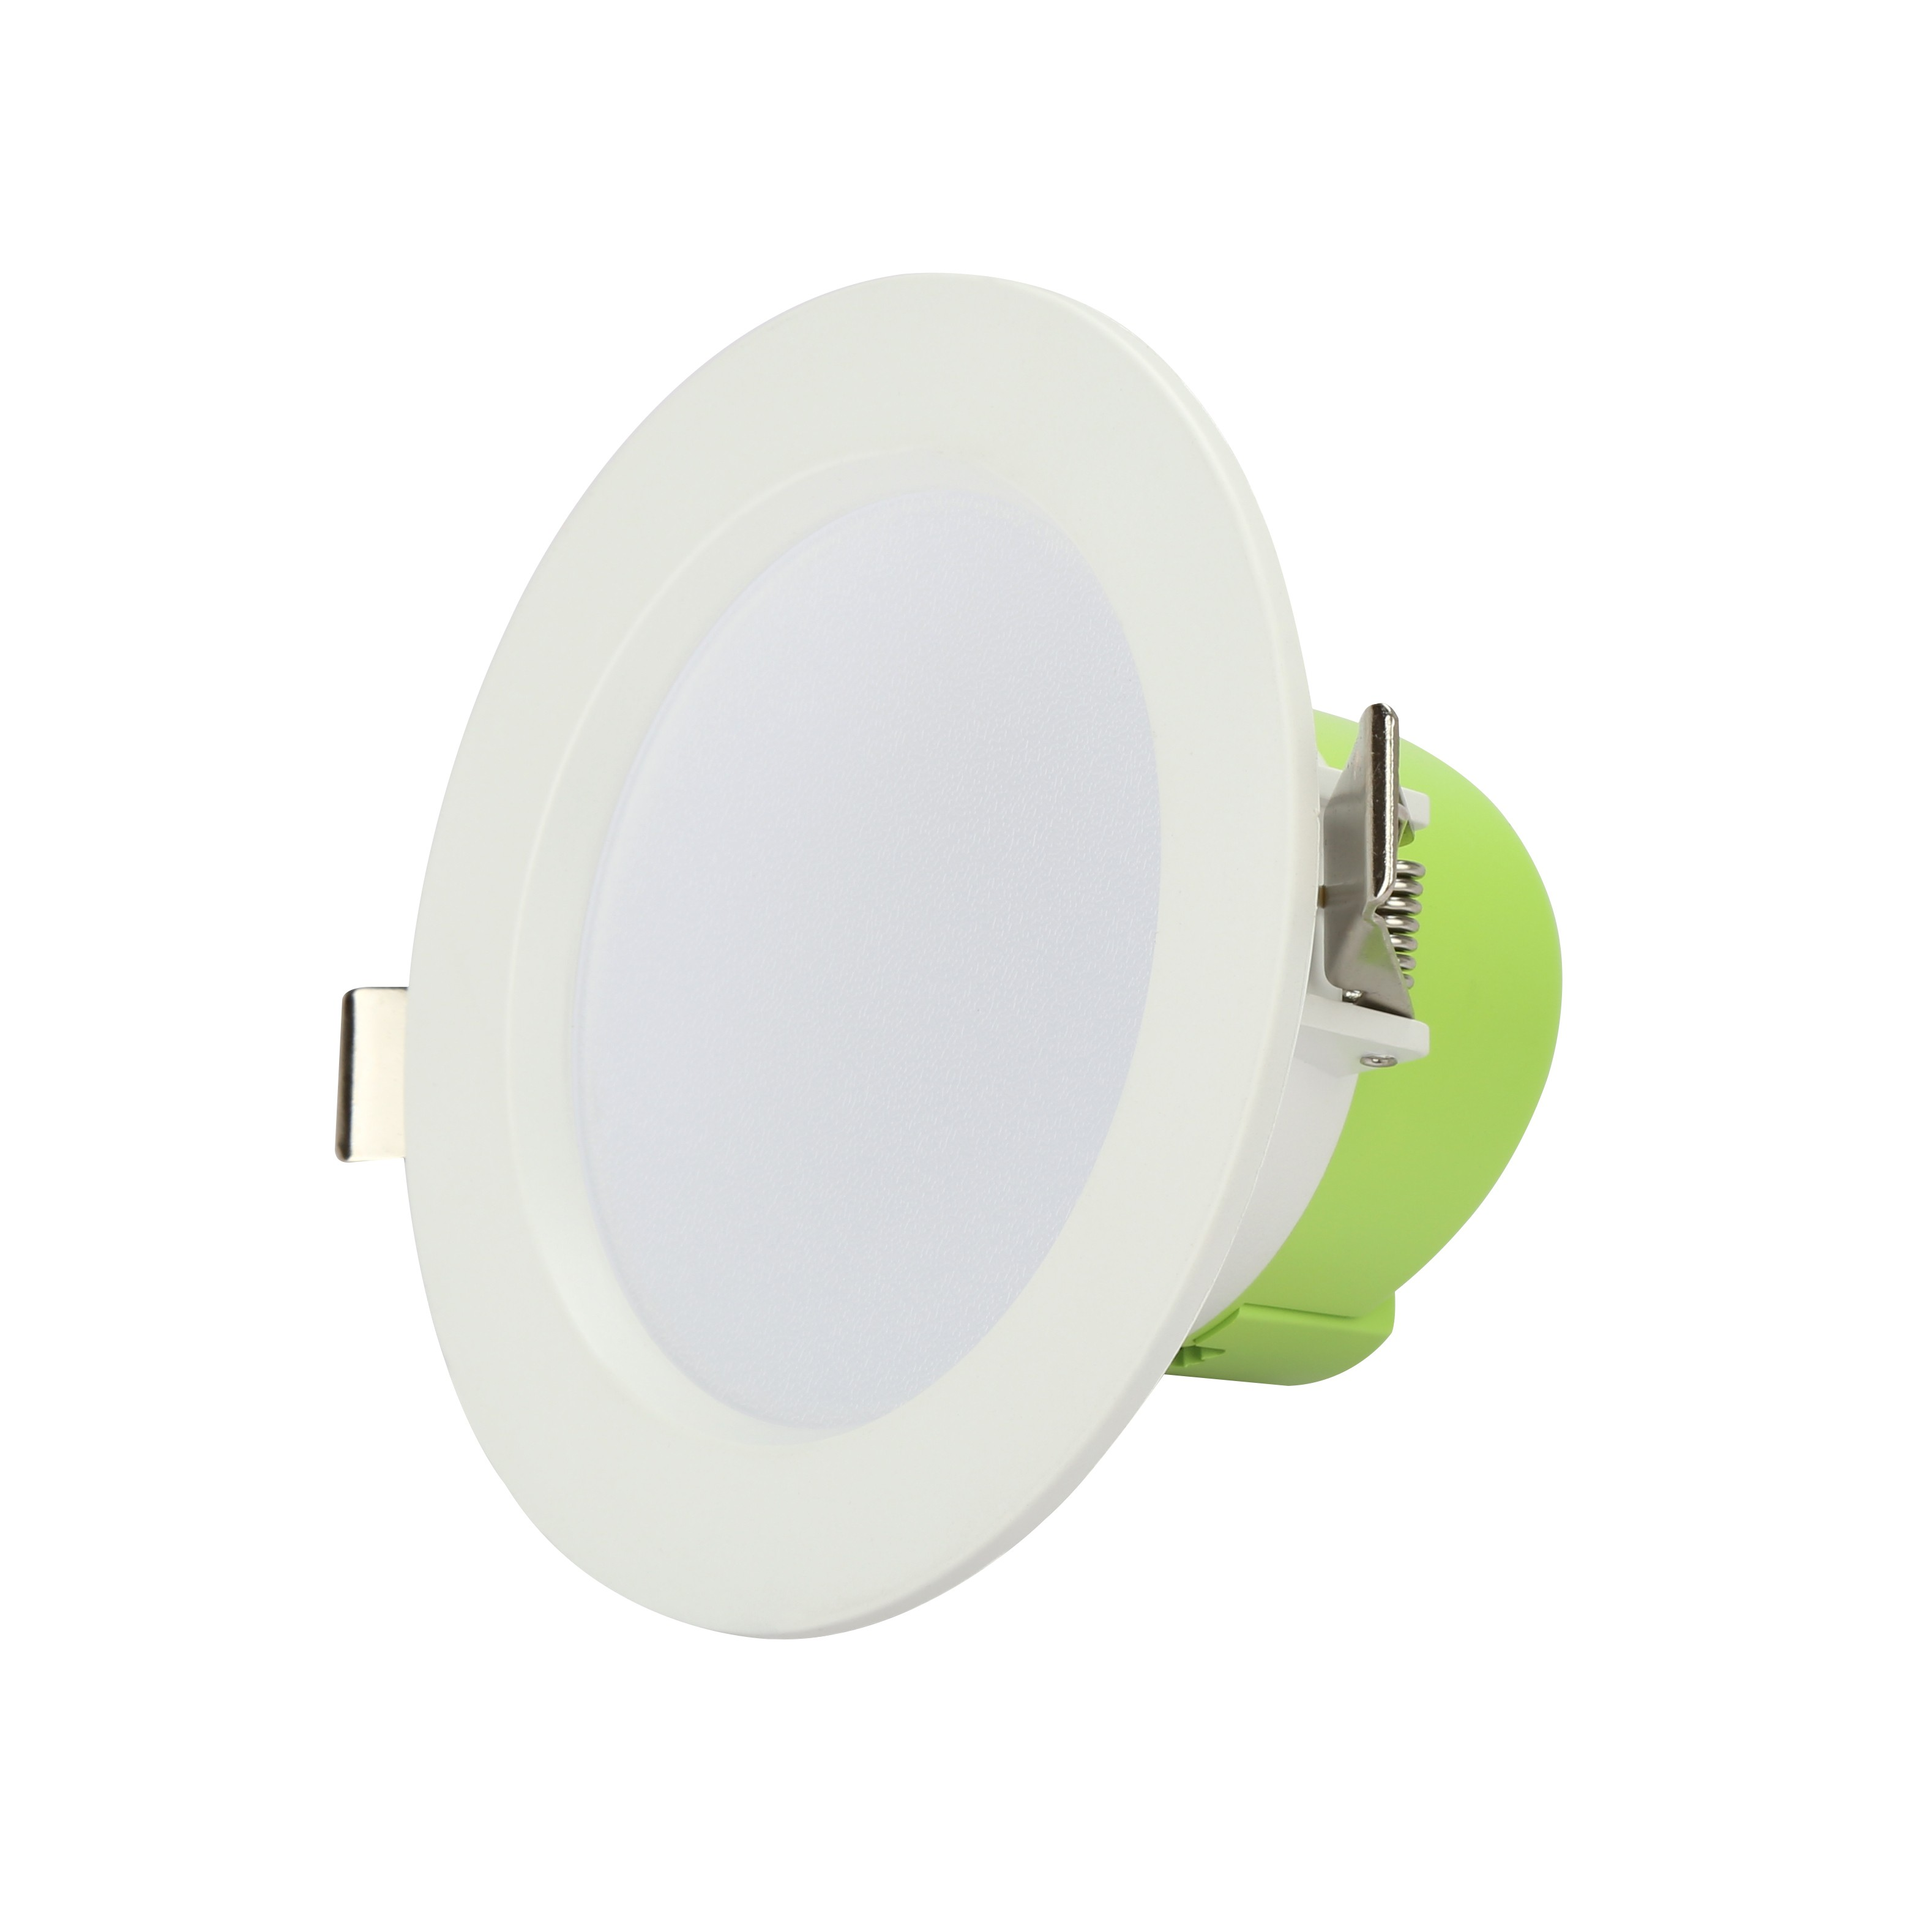 LED INTEGRAL DOWNLIGHT - 10W - 3000K